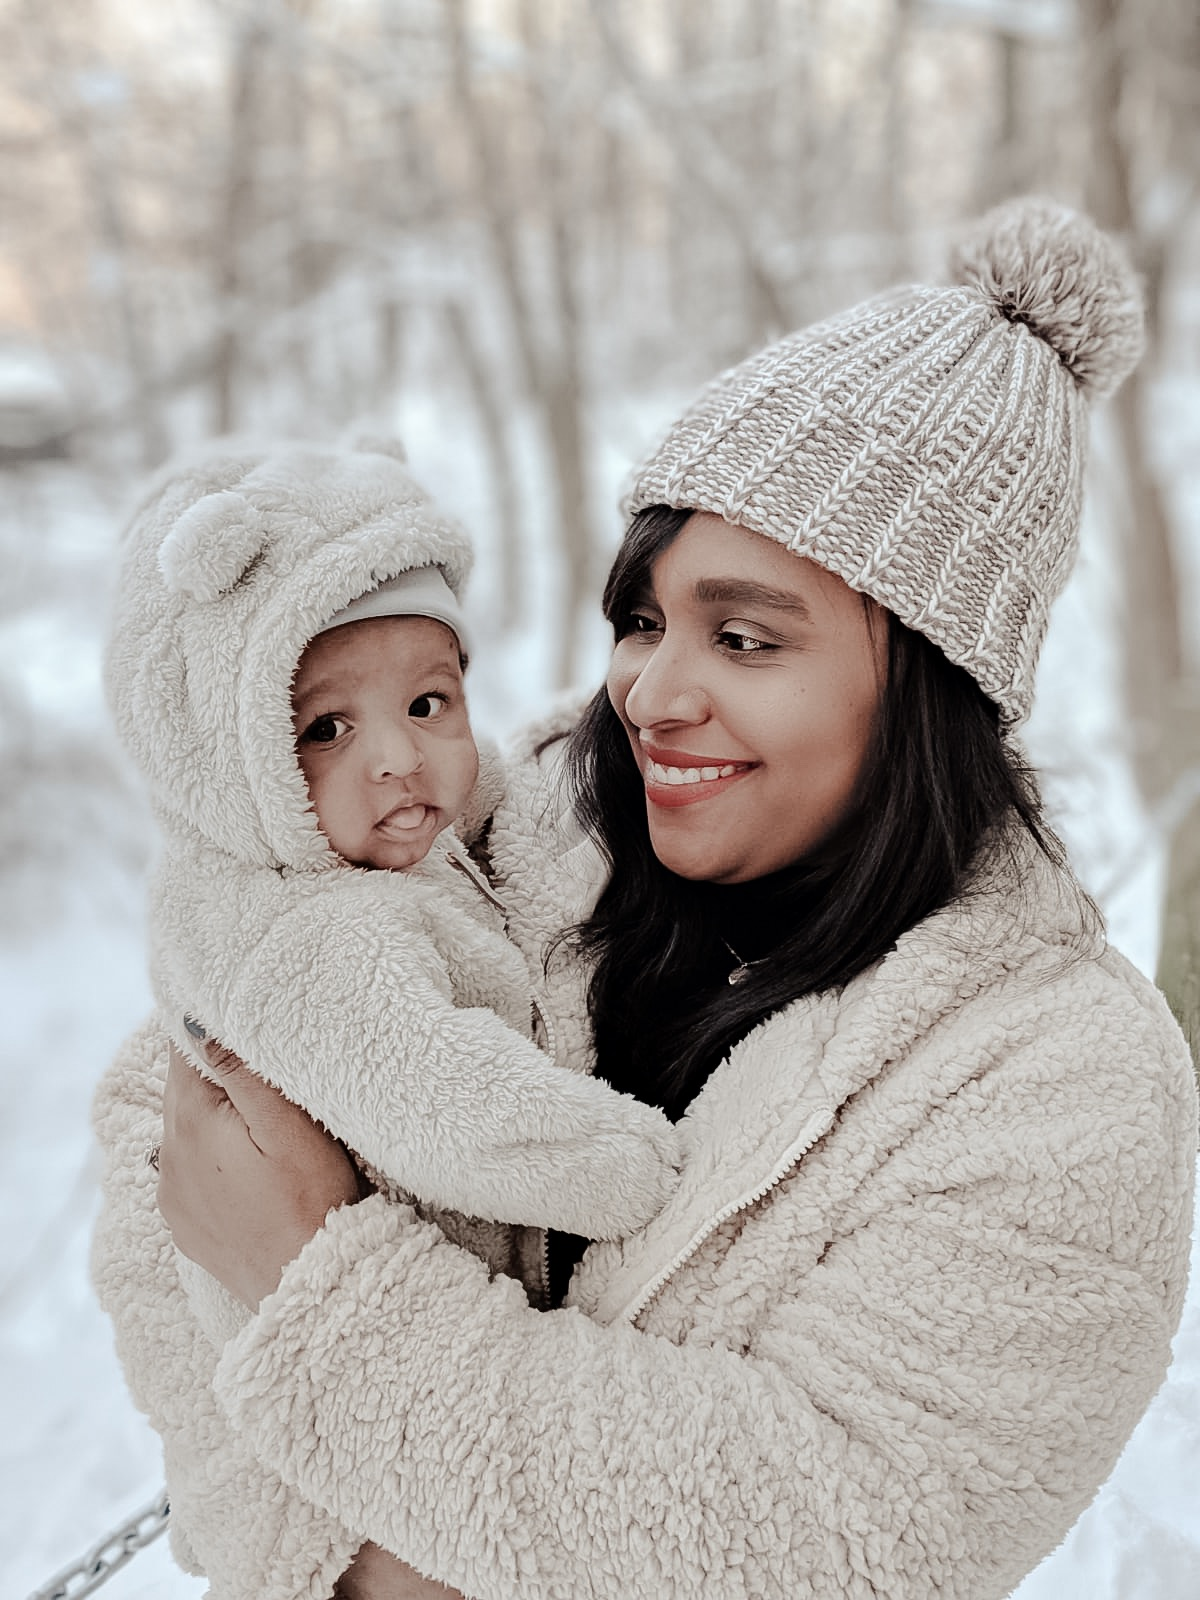 baby's first snow fall, mommy and me, baby and mom winter looks, baby winter coats, mom bloggers, winter wonderland, winter outfits